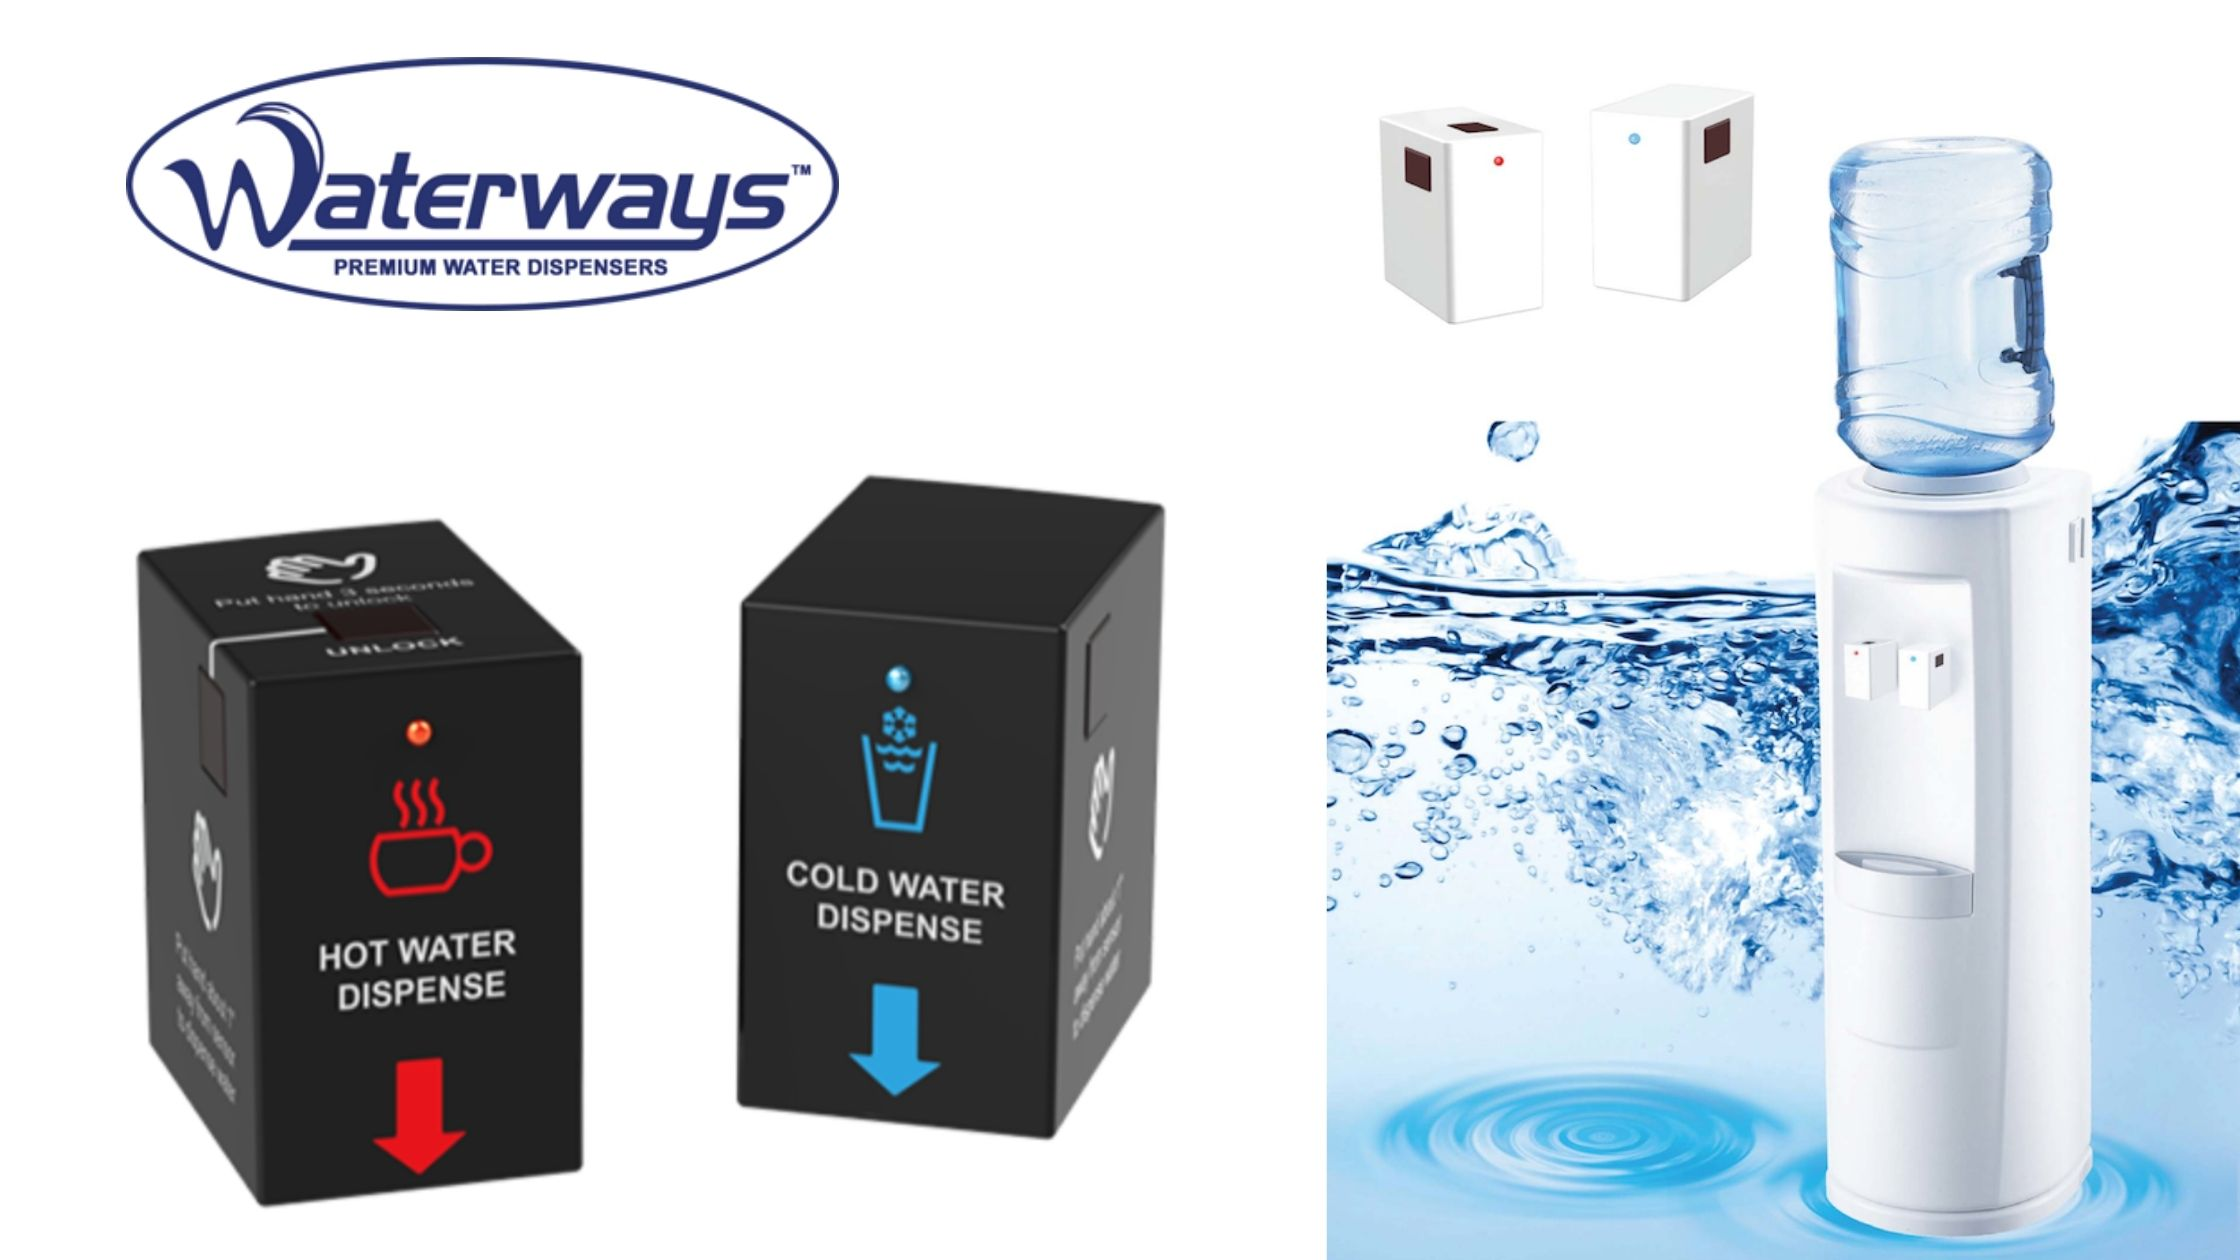 touchless water dispenser